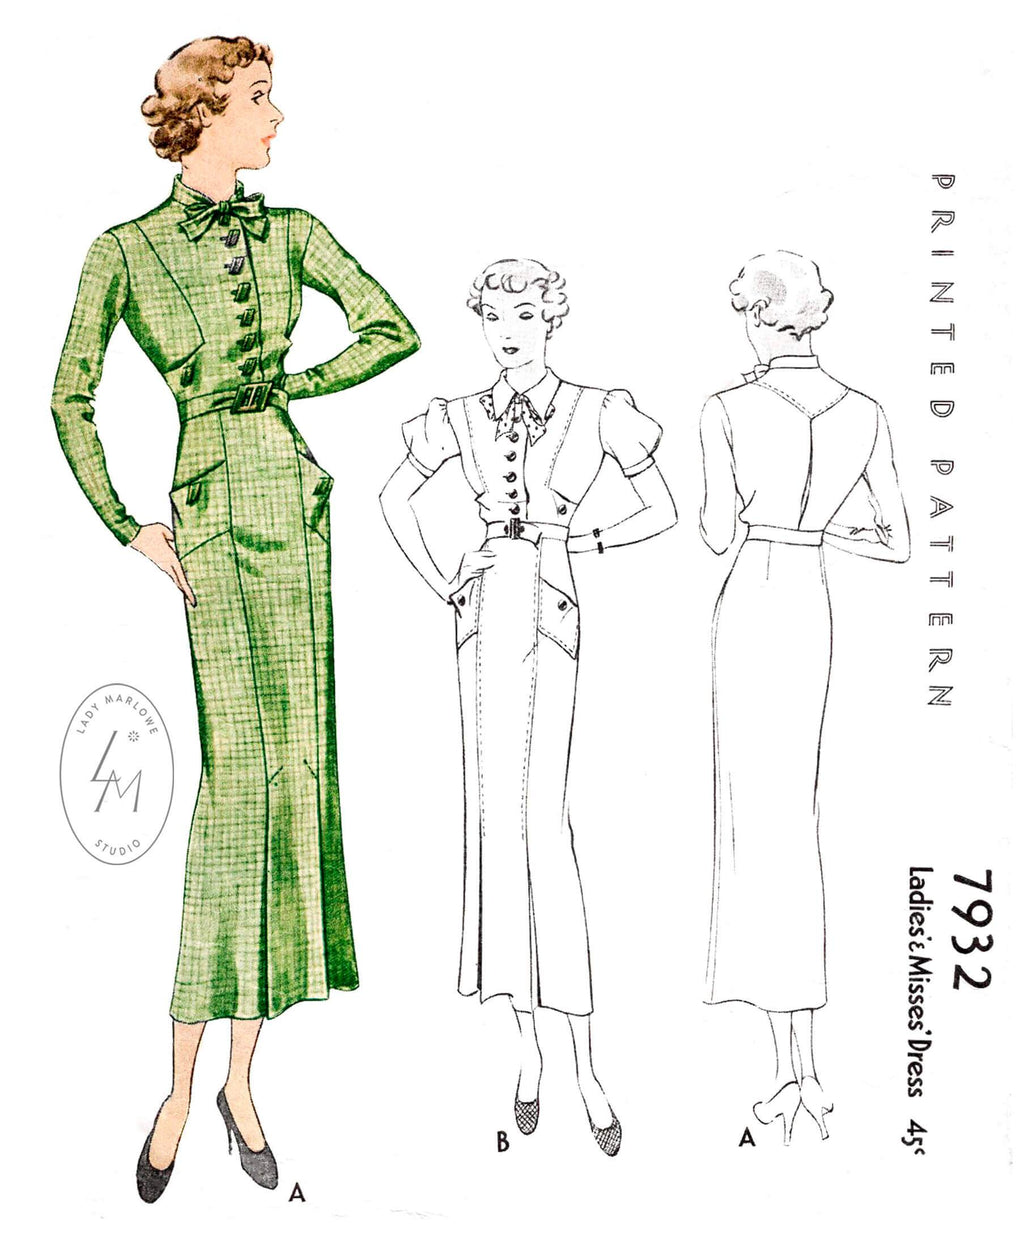 1930s 1934 vintage dress pattern McCall 7932 two styles short puff sleeves long straight sleeves inverted pleat skirt bow tie collar reproduction